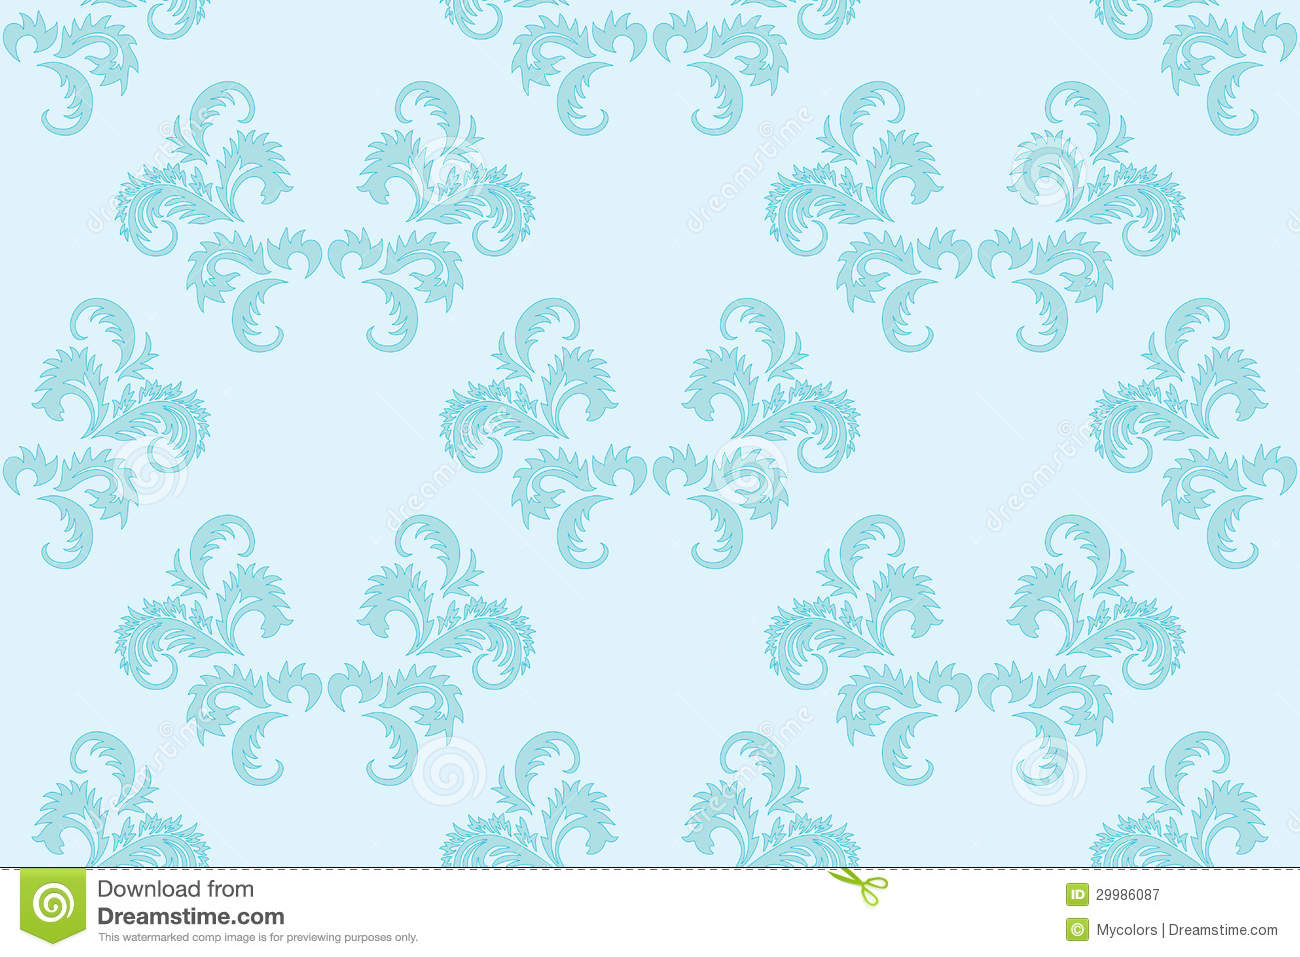 blue flower backgrounds vector - photo #22